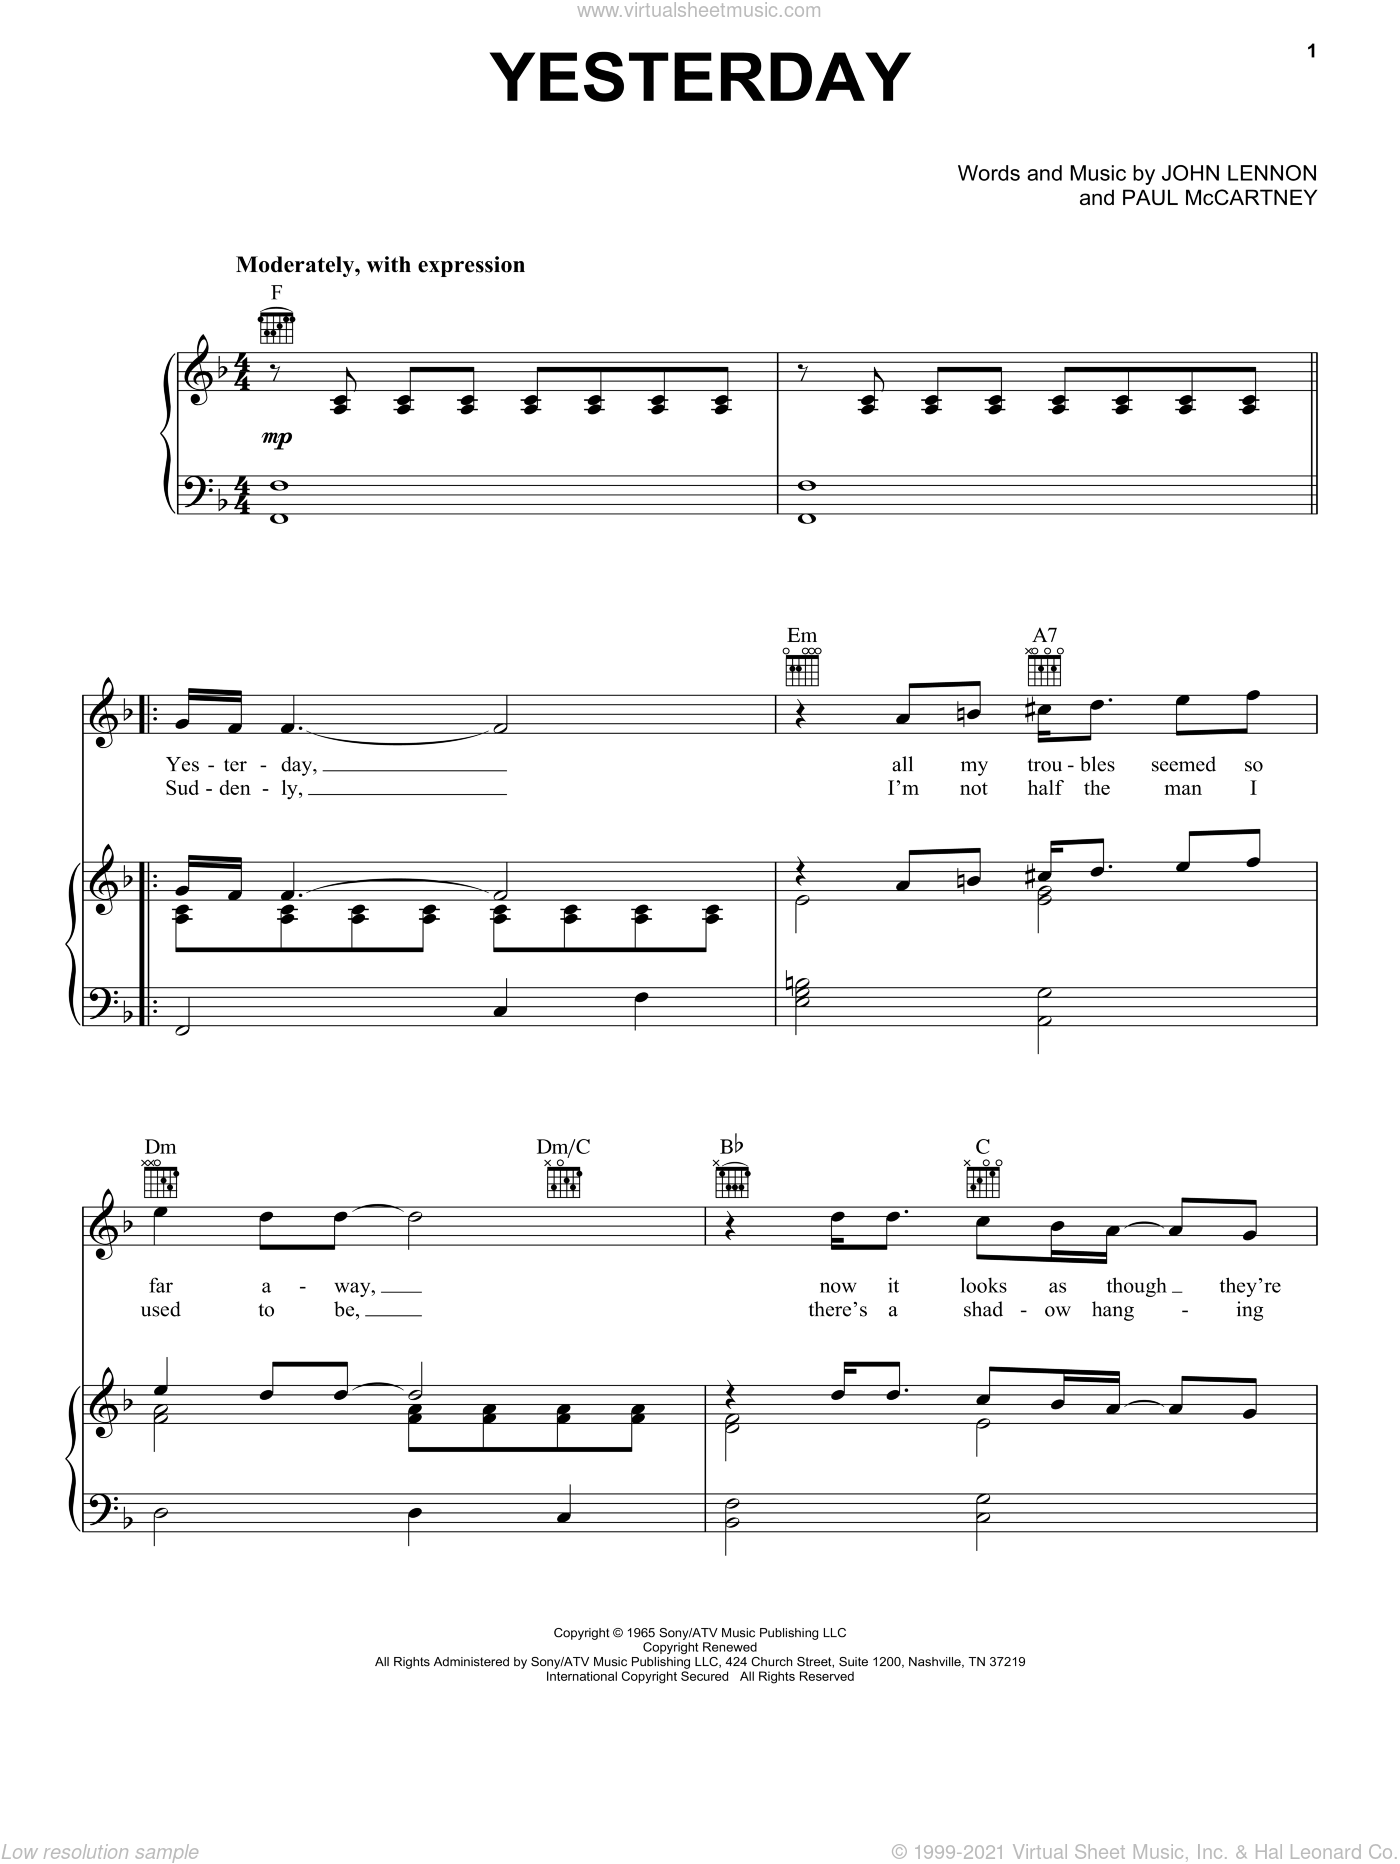 Yesterday sheet music for voice, piano or guitar by The Beatles, John Lennon and Paul McCartney, intermediate skill level